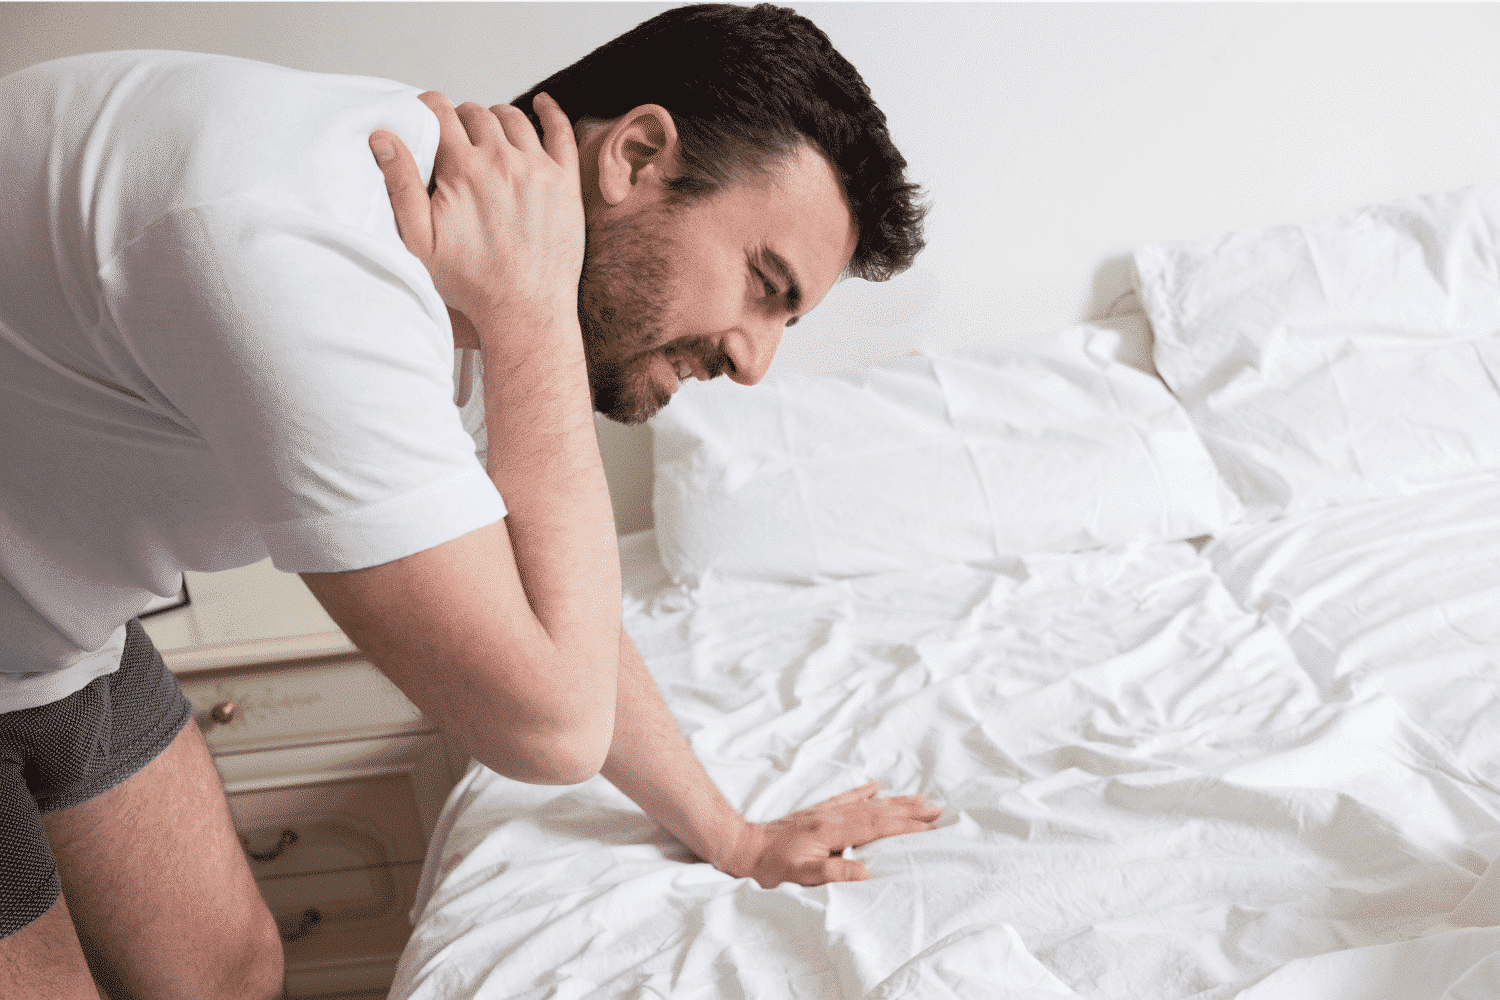 Neck Pain From Sleeping Wrong